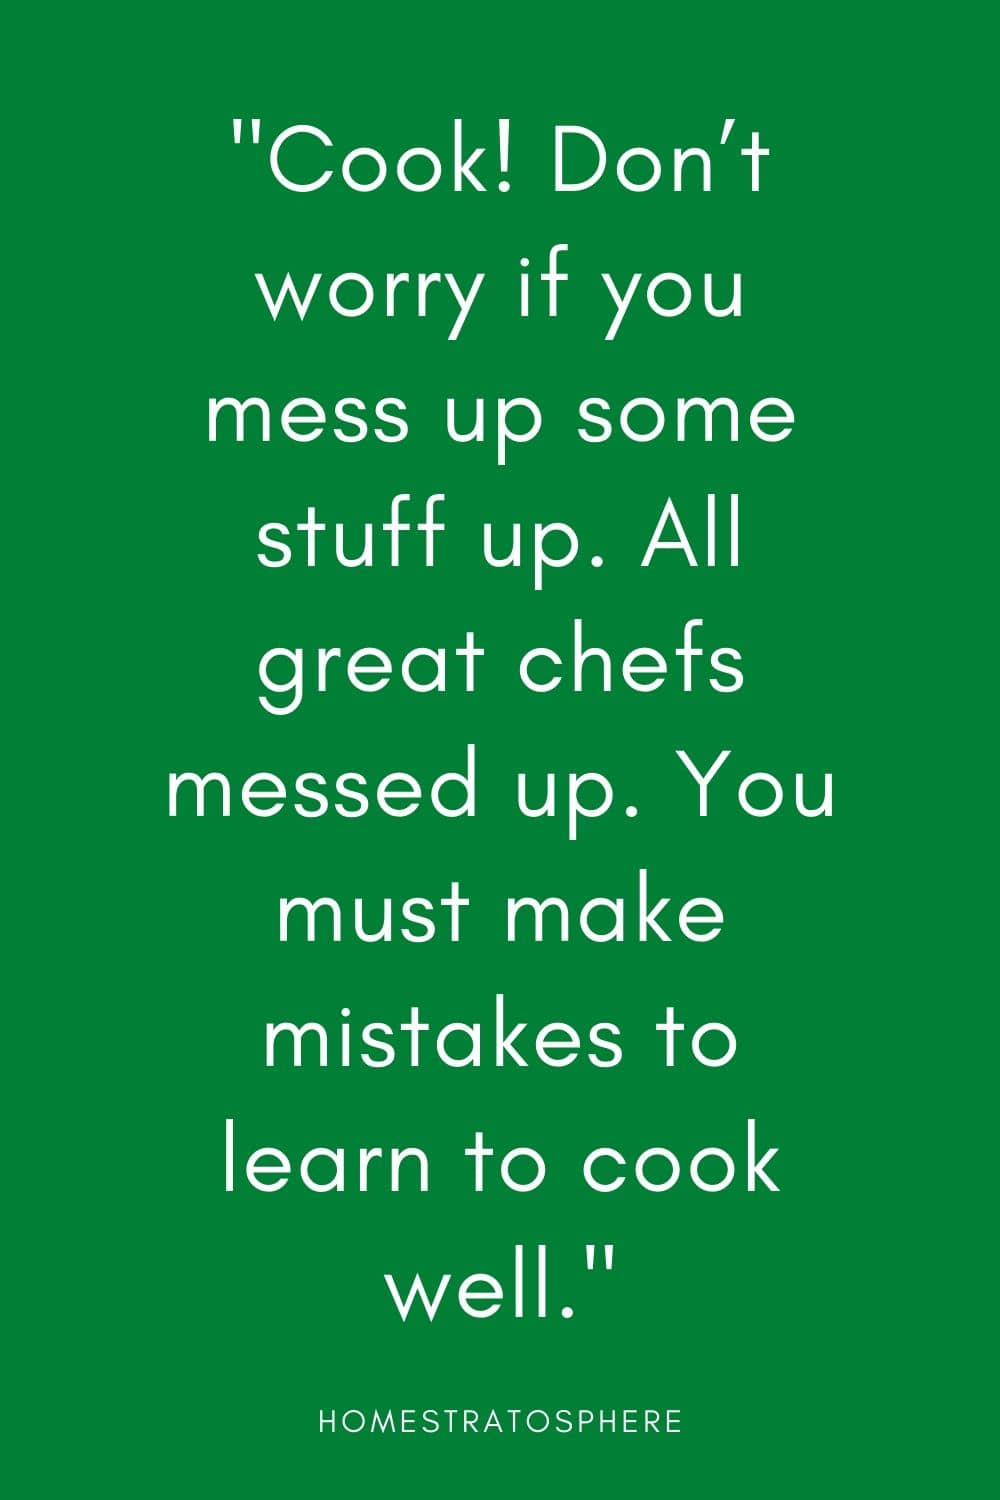 """Cook! Don't worry if you mess up some stuff up. All great chefs messed up. You must make mistakes to learn to cook well."""